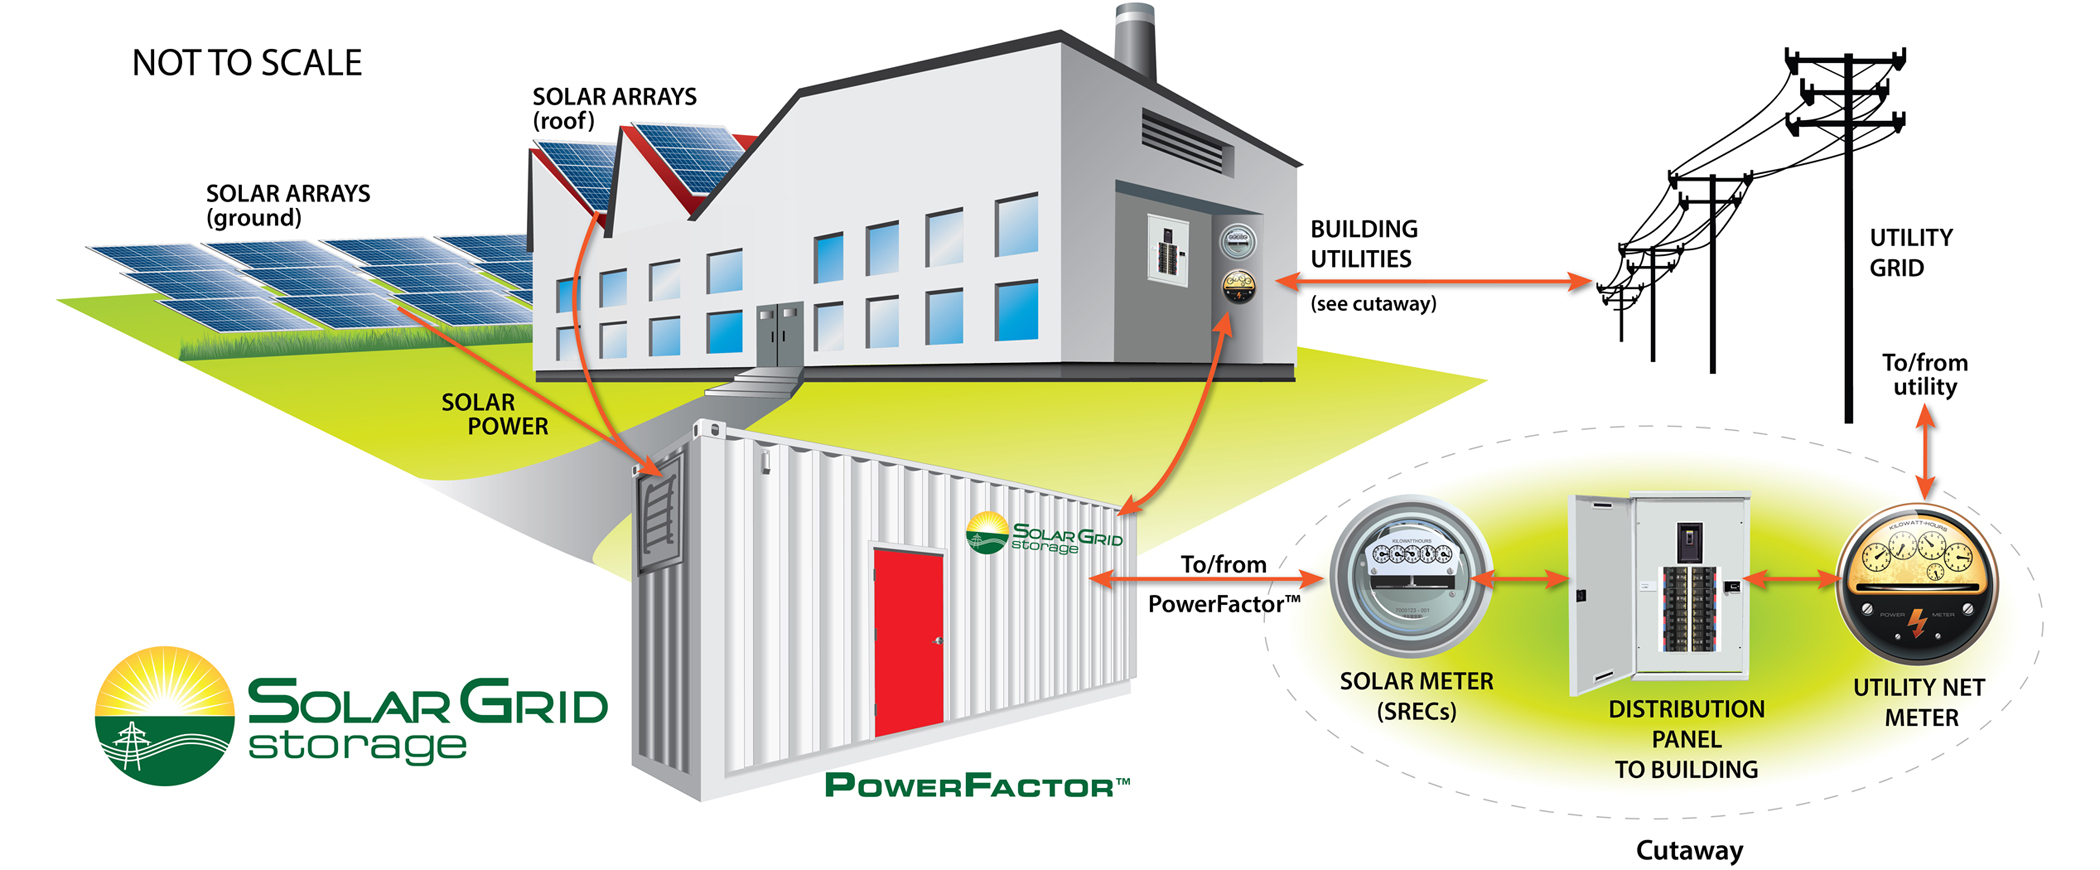 Meet Solar Grid Storage, a startup mixing batteries and solar